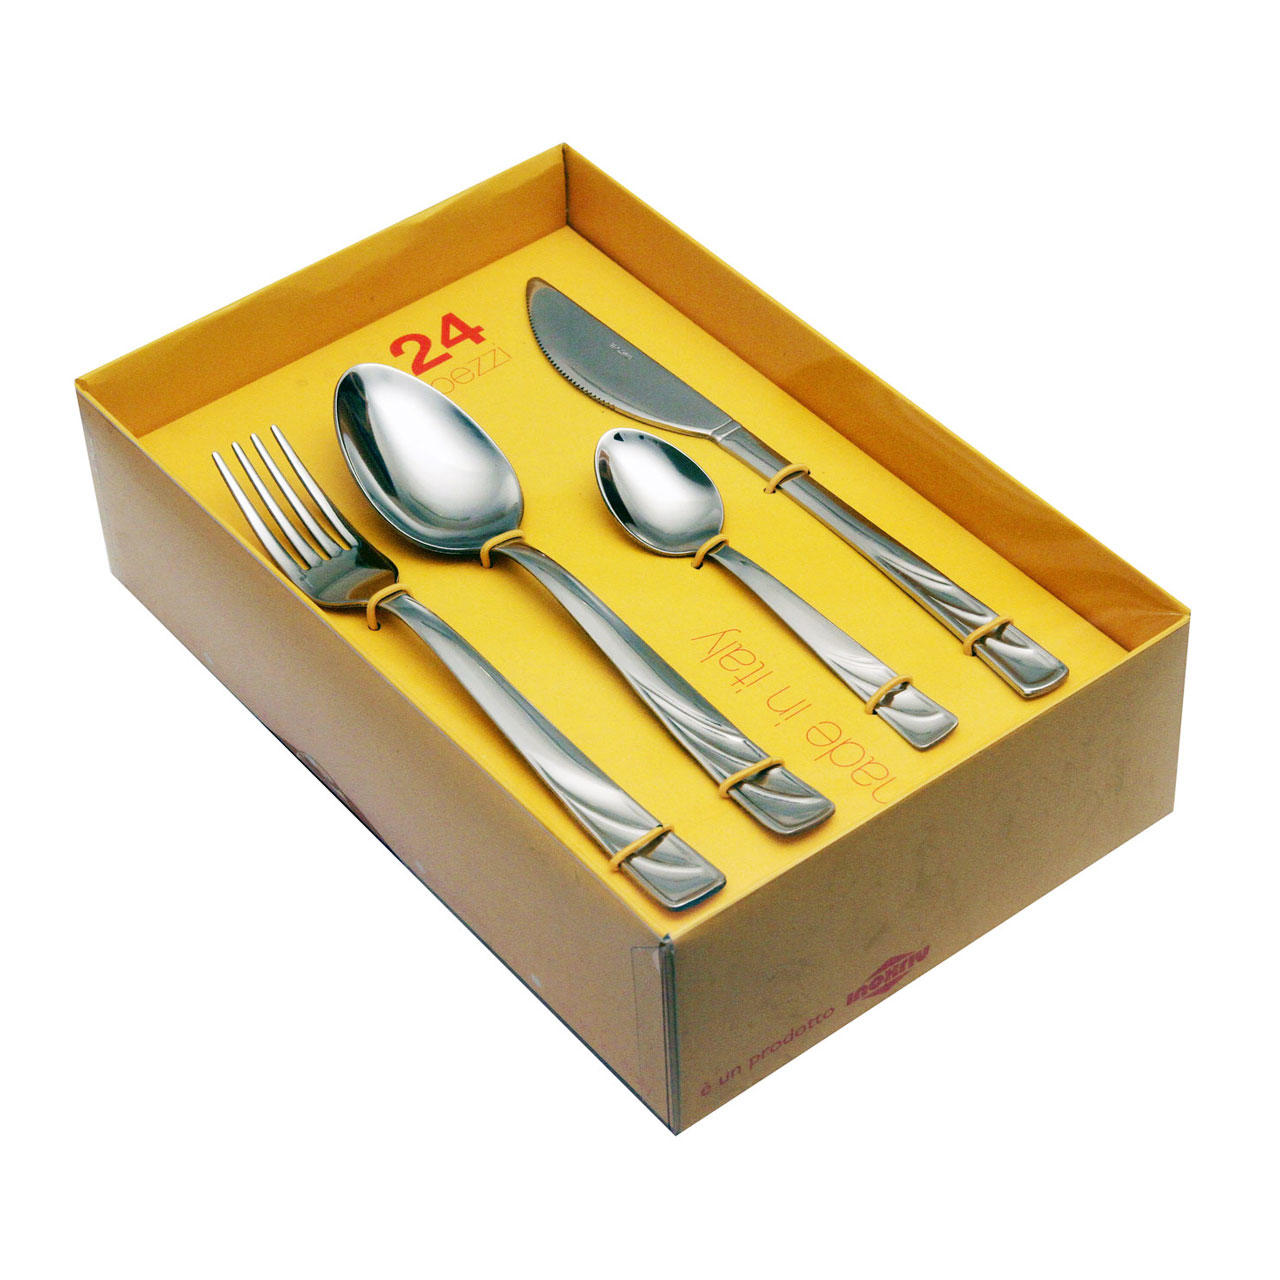 61320525 24 pcs. cutlery set pressed knife Nature Box